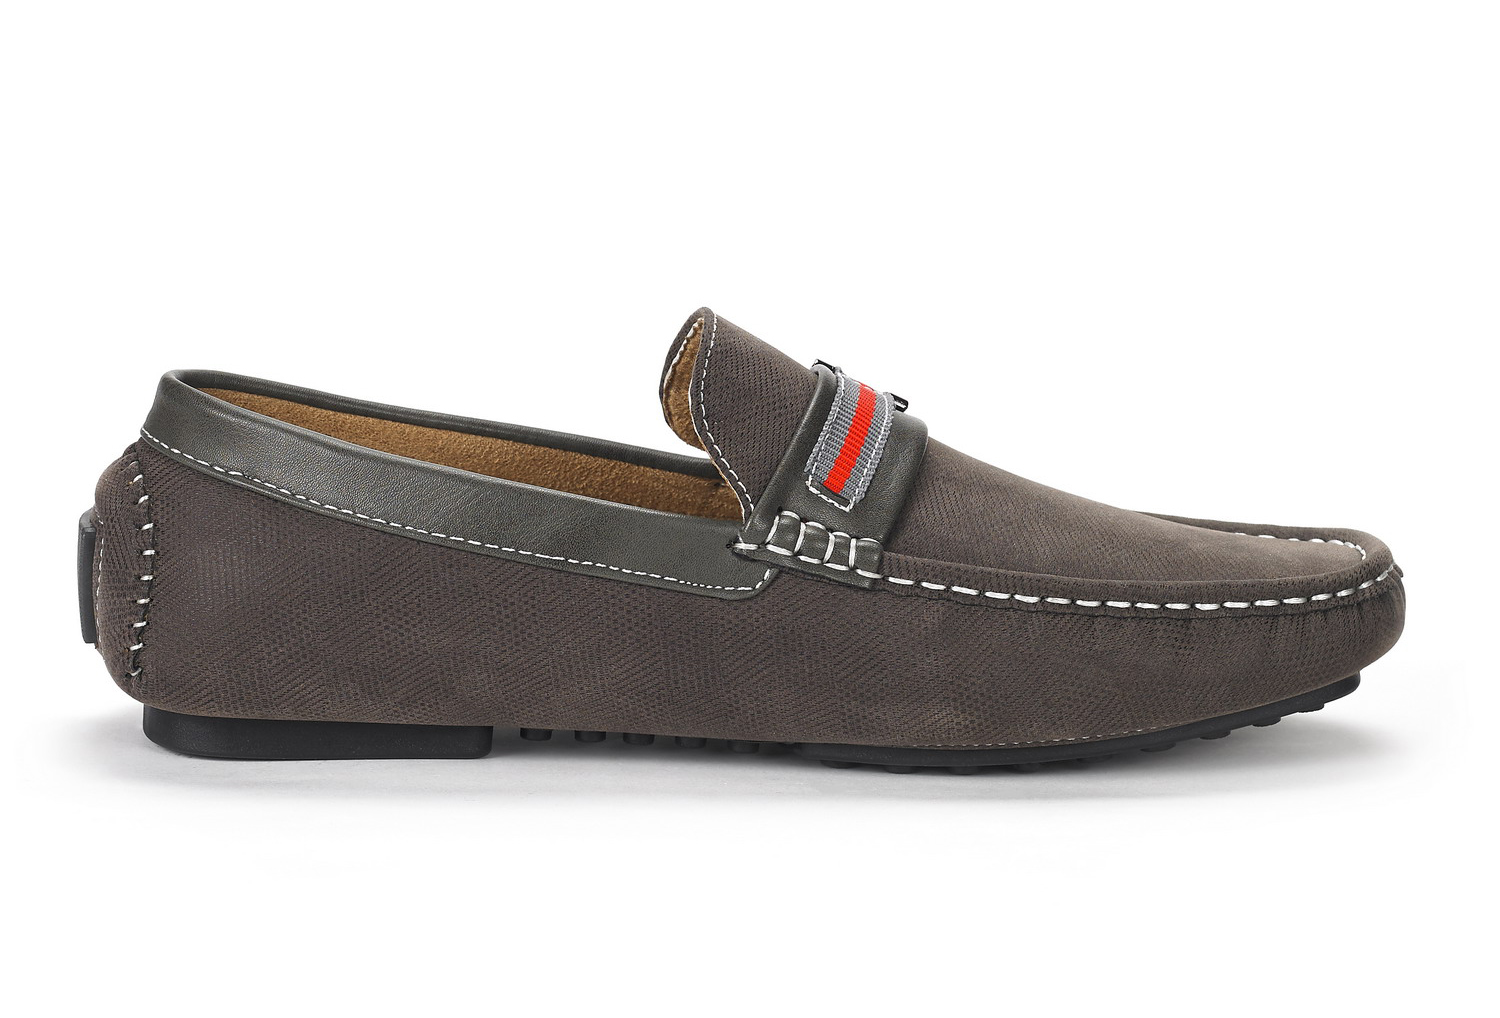 Bruno-Marc-Men-Casual-Driving-Loafers-Breathable-Antiskid-Slip-On-Moccasins-Shoe thumbnail 24